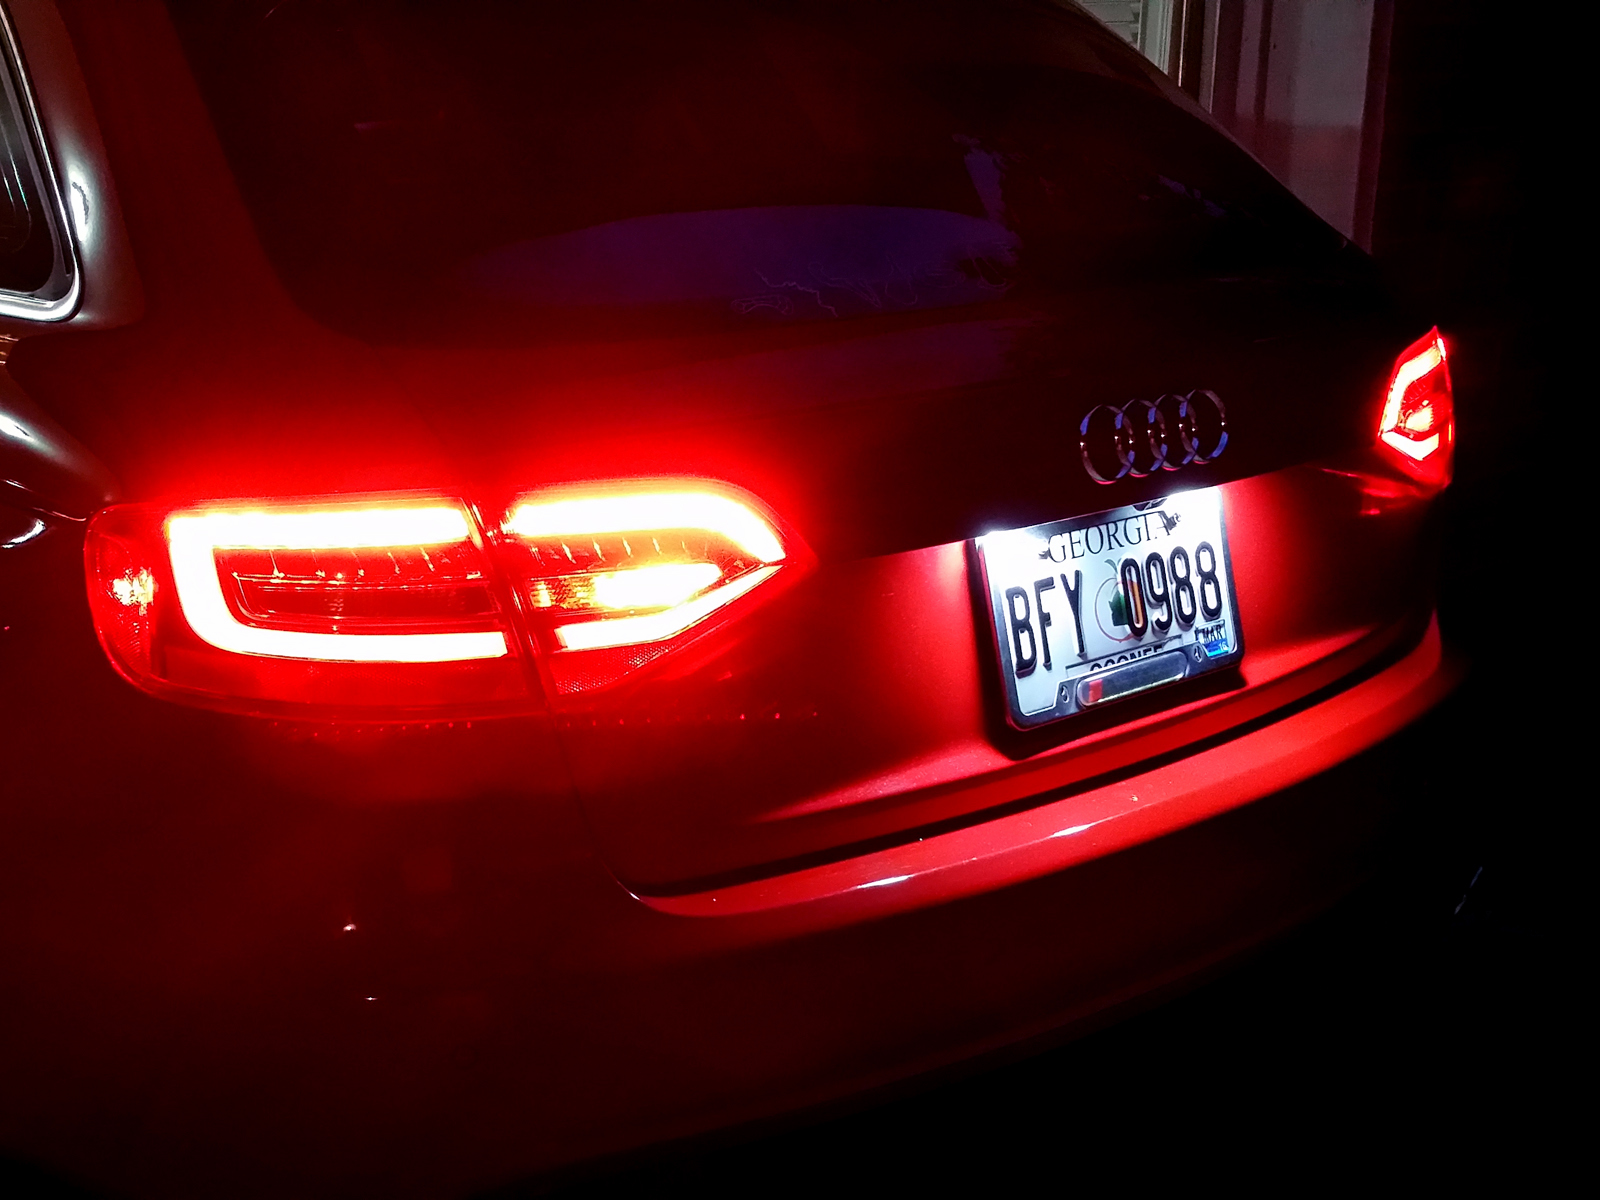 For Sale 2009 Audi A4 20t S Line Prestige Quattro Avant Wiring Harness 2008 Which Usually Requires A Lot Of Extra Configuration To Enable The Super Bright Rear Fog Lights Came In Very Handy At 5400 Ft On Haw Knob Mountain